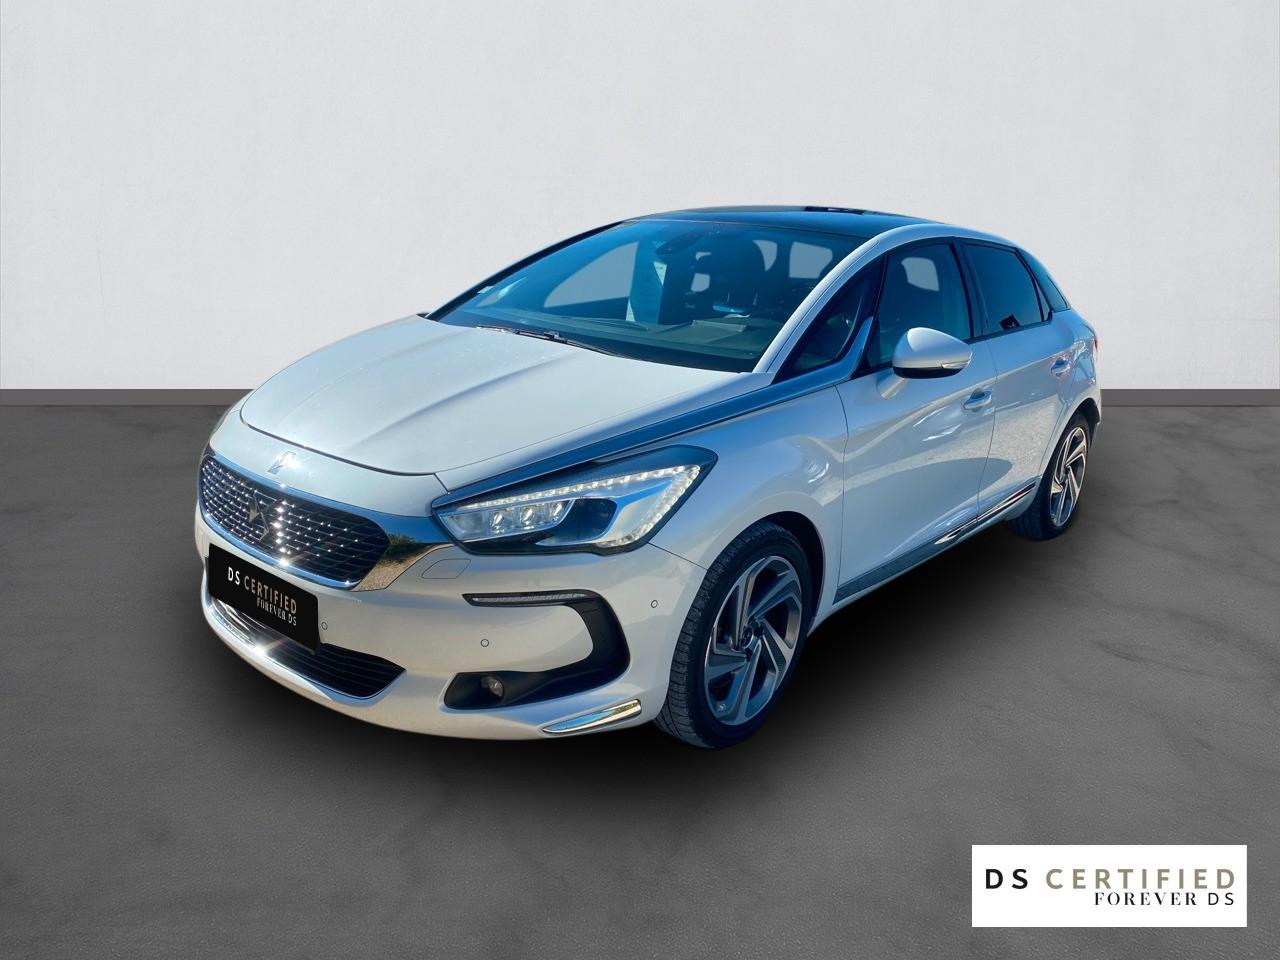 occasion ds ds 5 ds certified